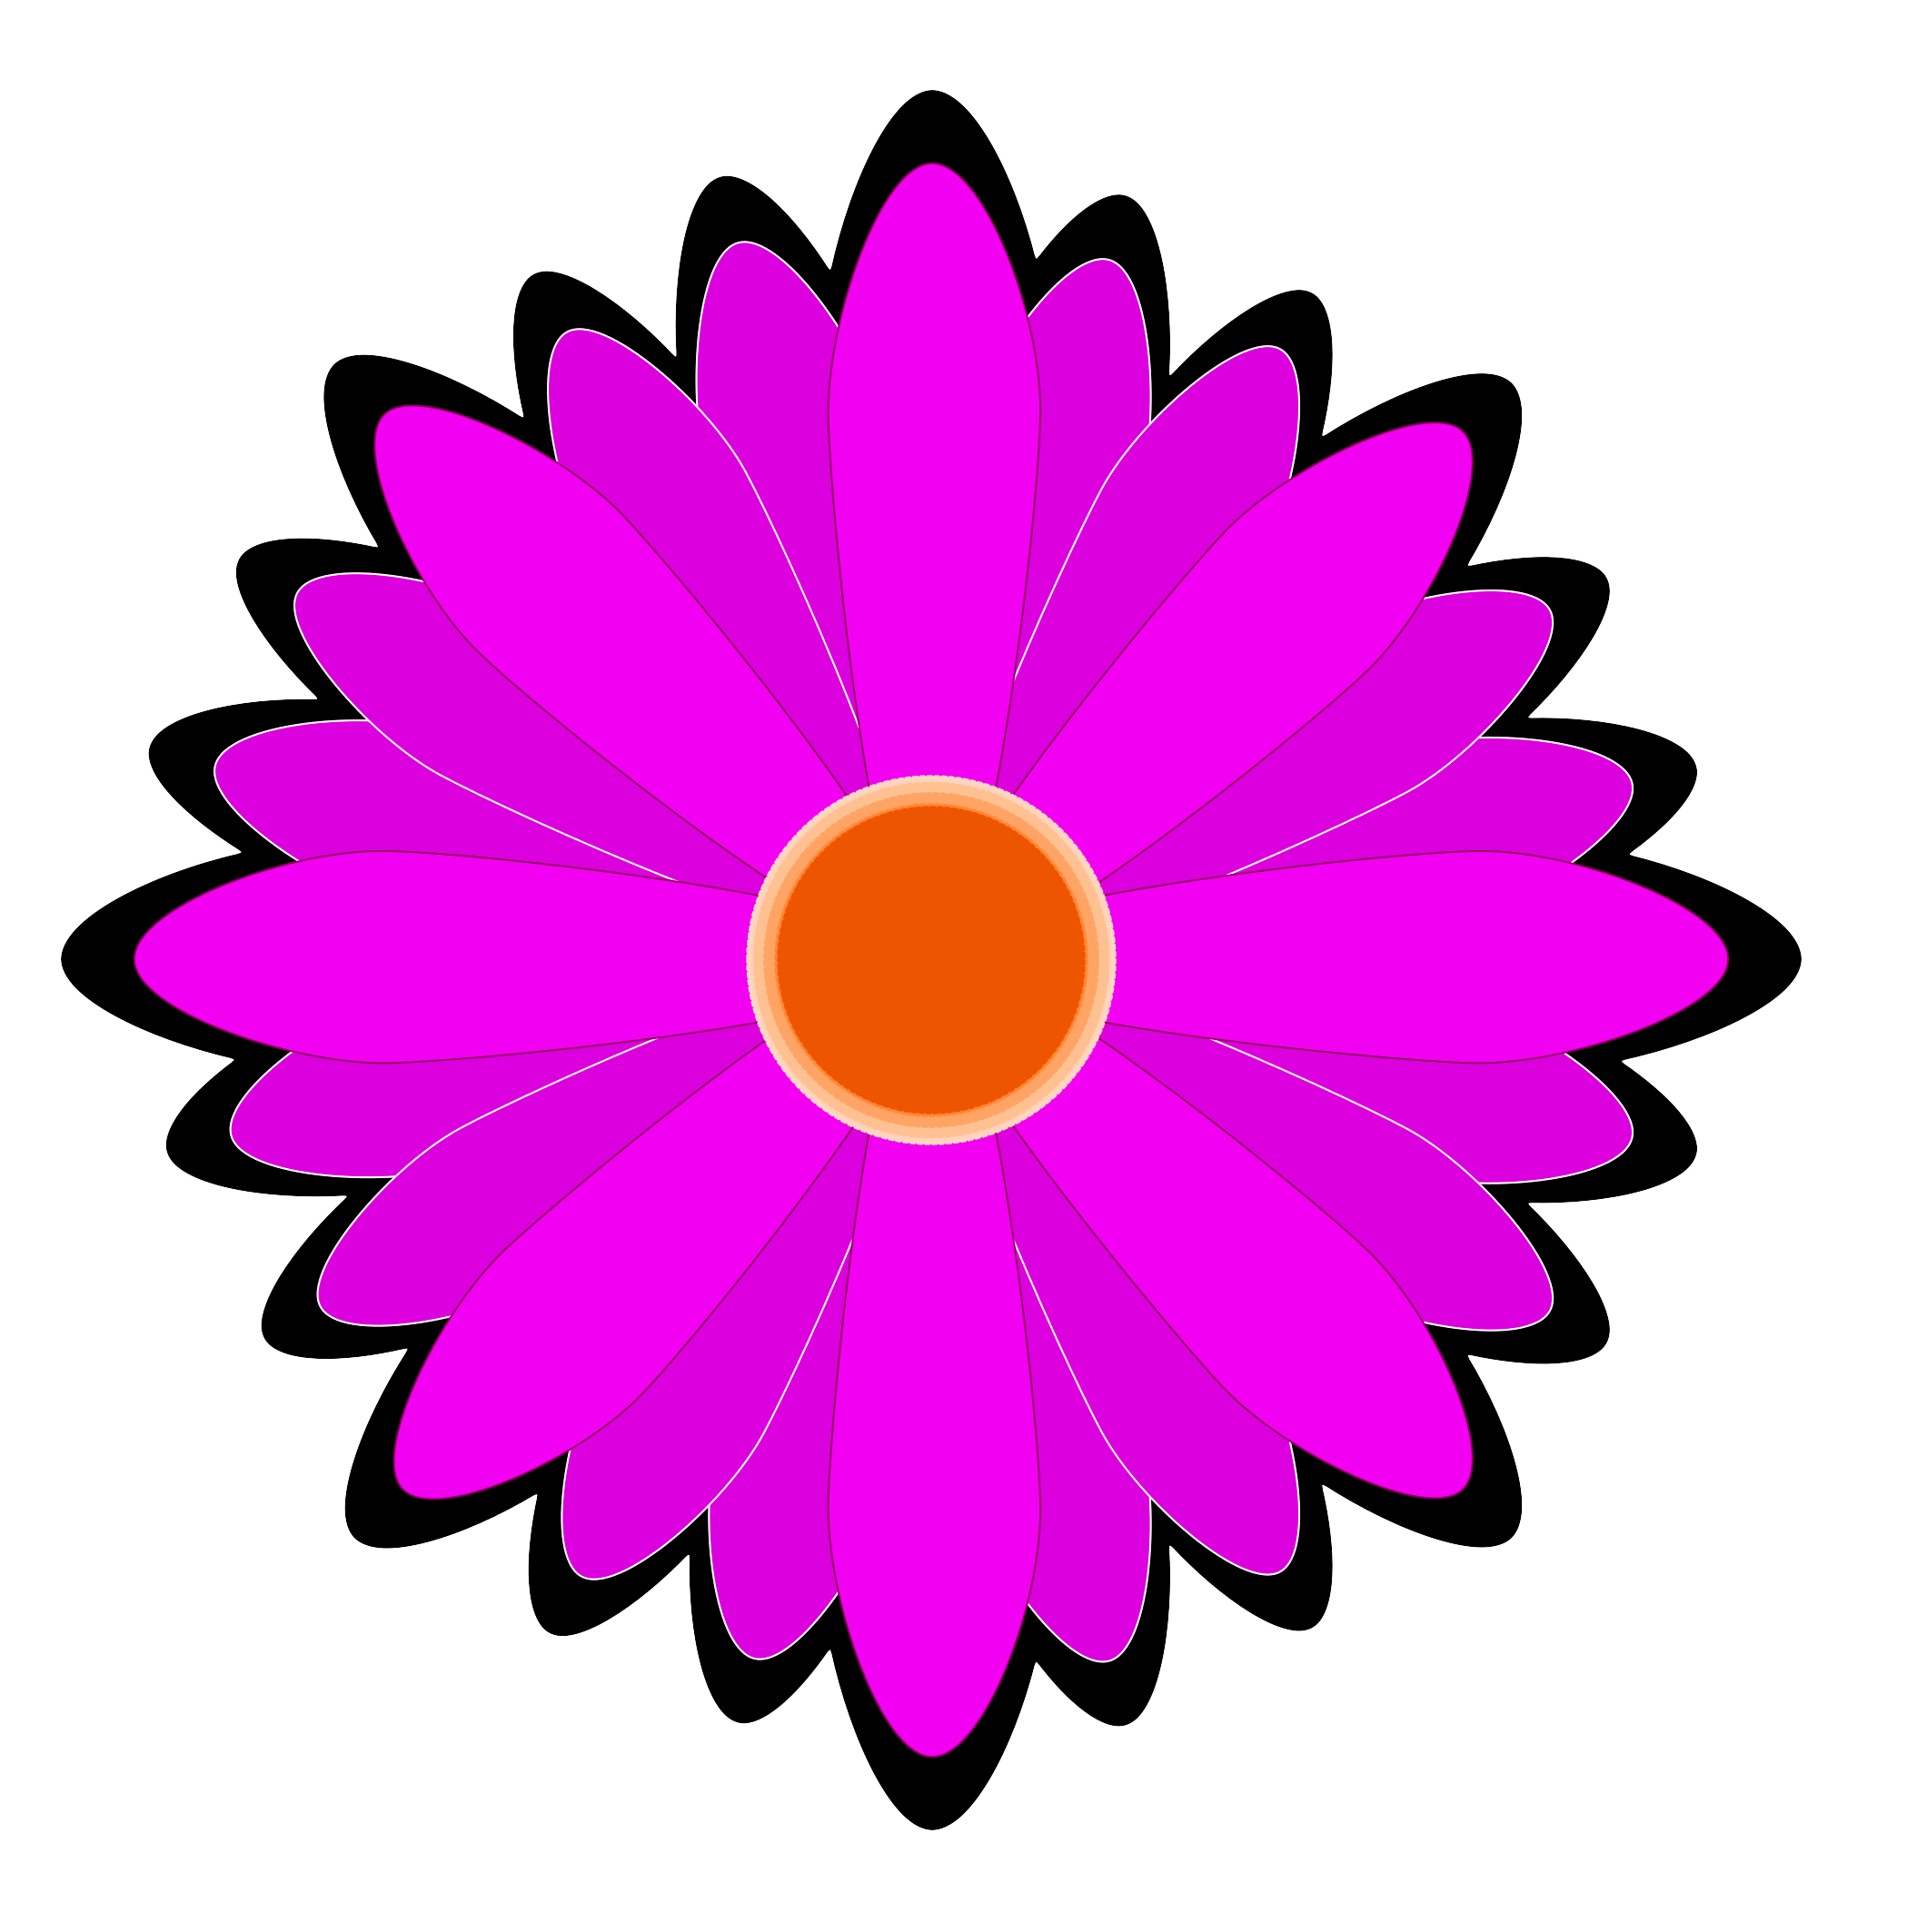 Flower Vector PNG Image